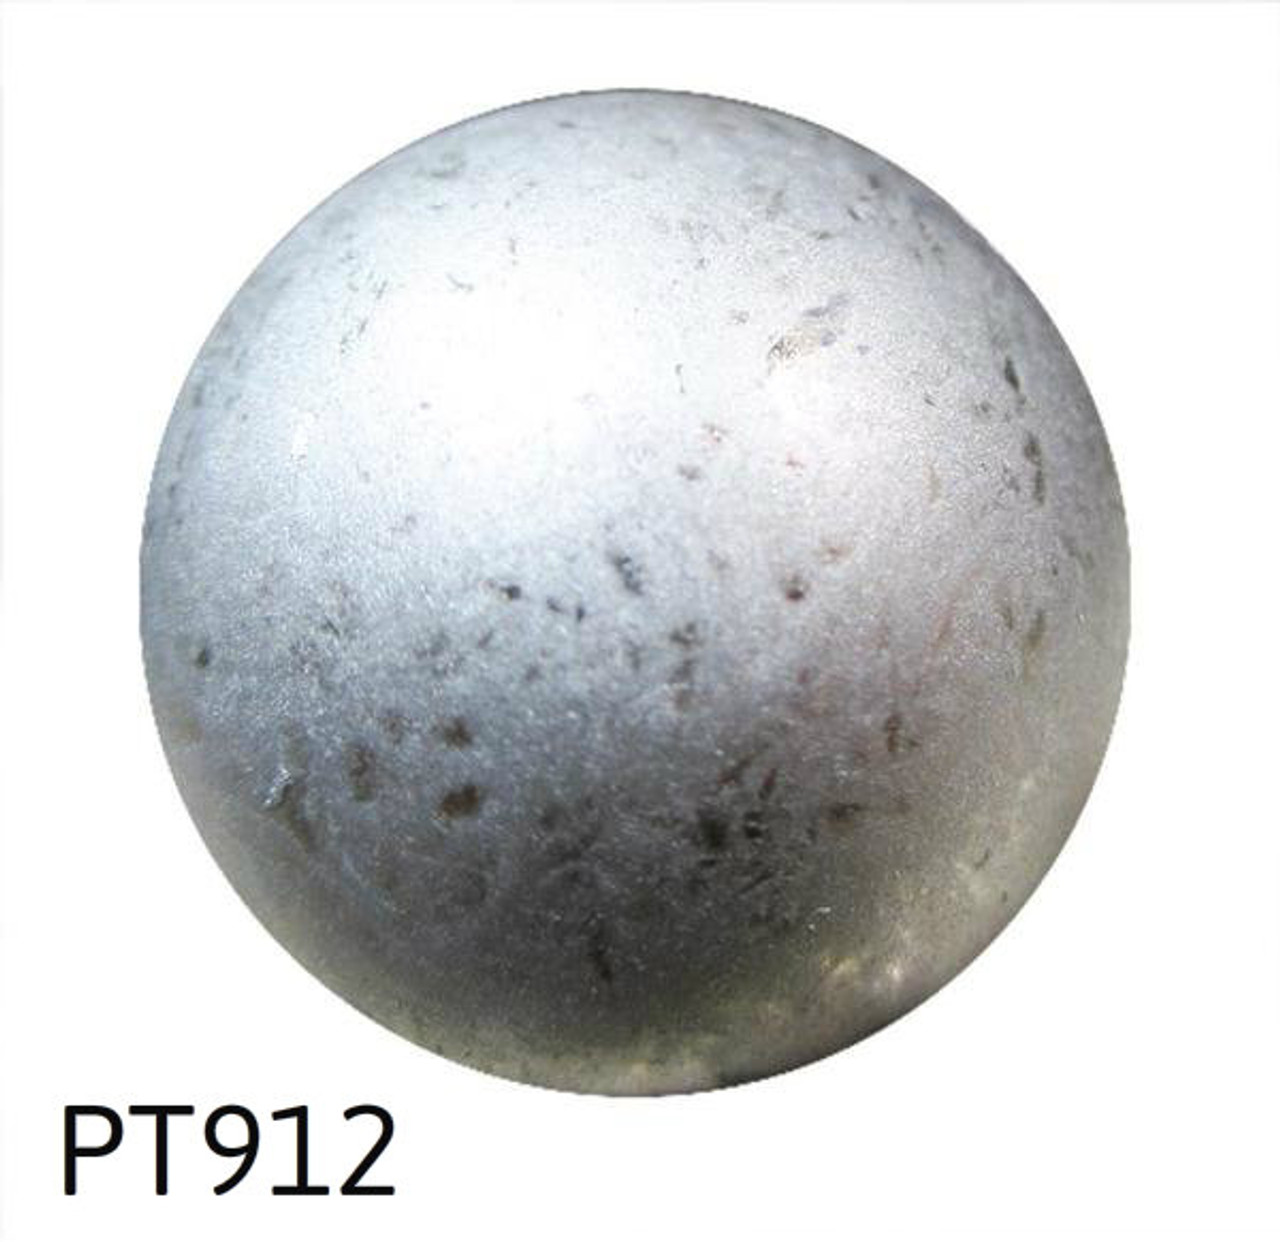 PT912 - Pewter High Dome Nail/Clavos Head - Head Size: 7/16\